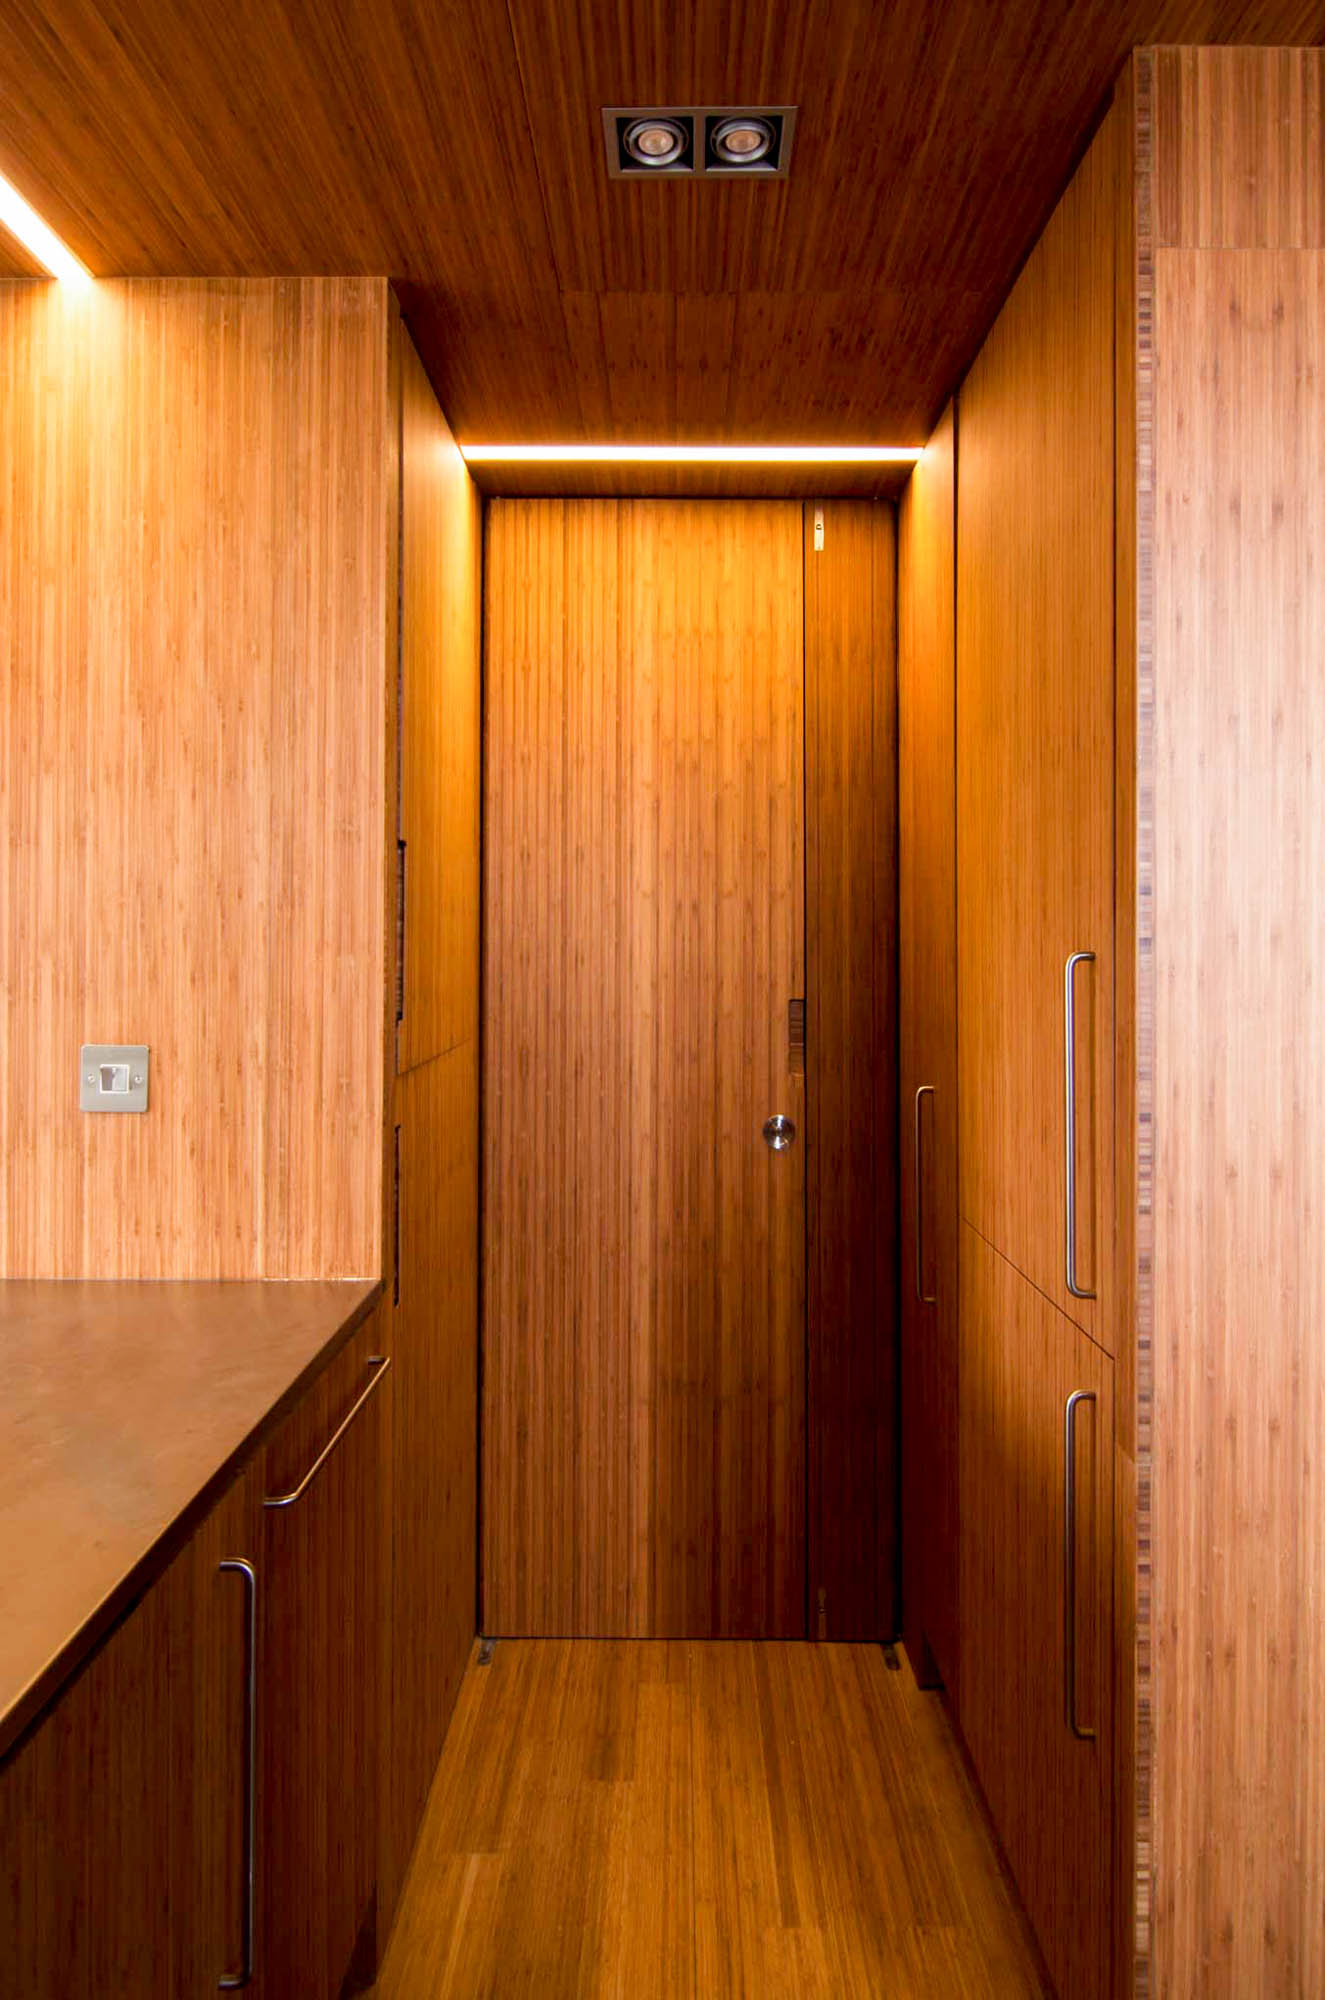 Interior view of the Plyboo pod kitchen and concealed door.